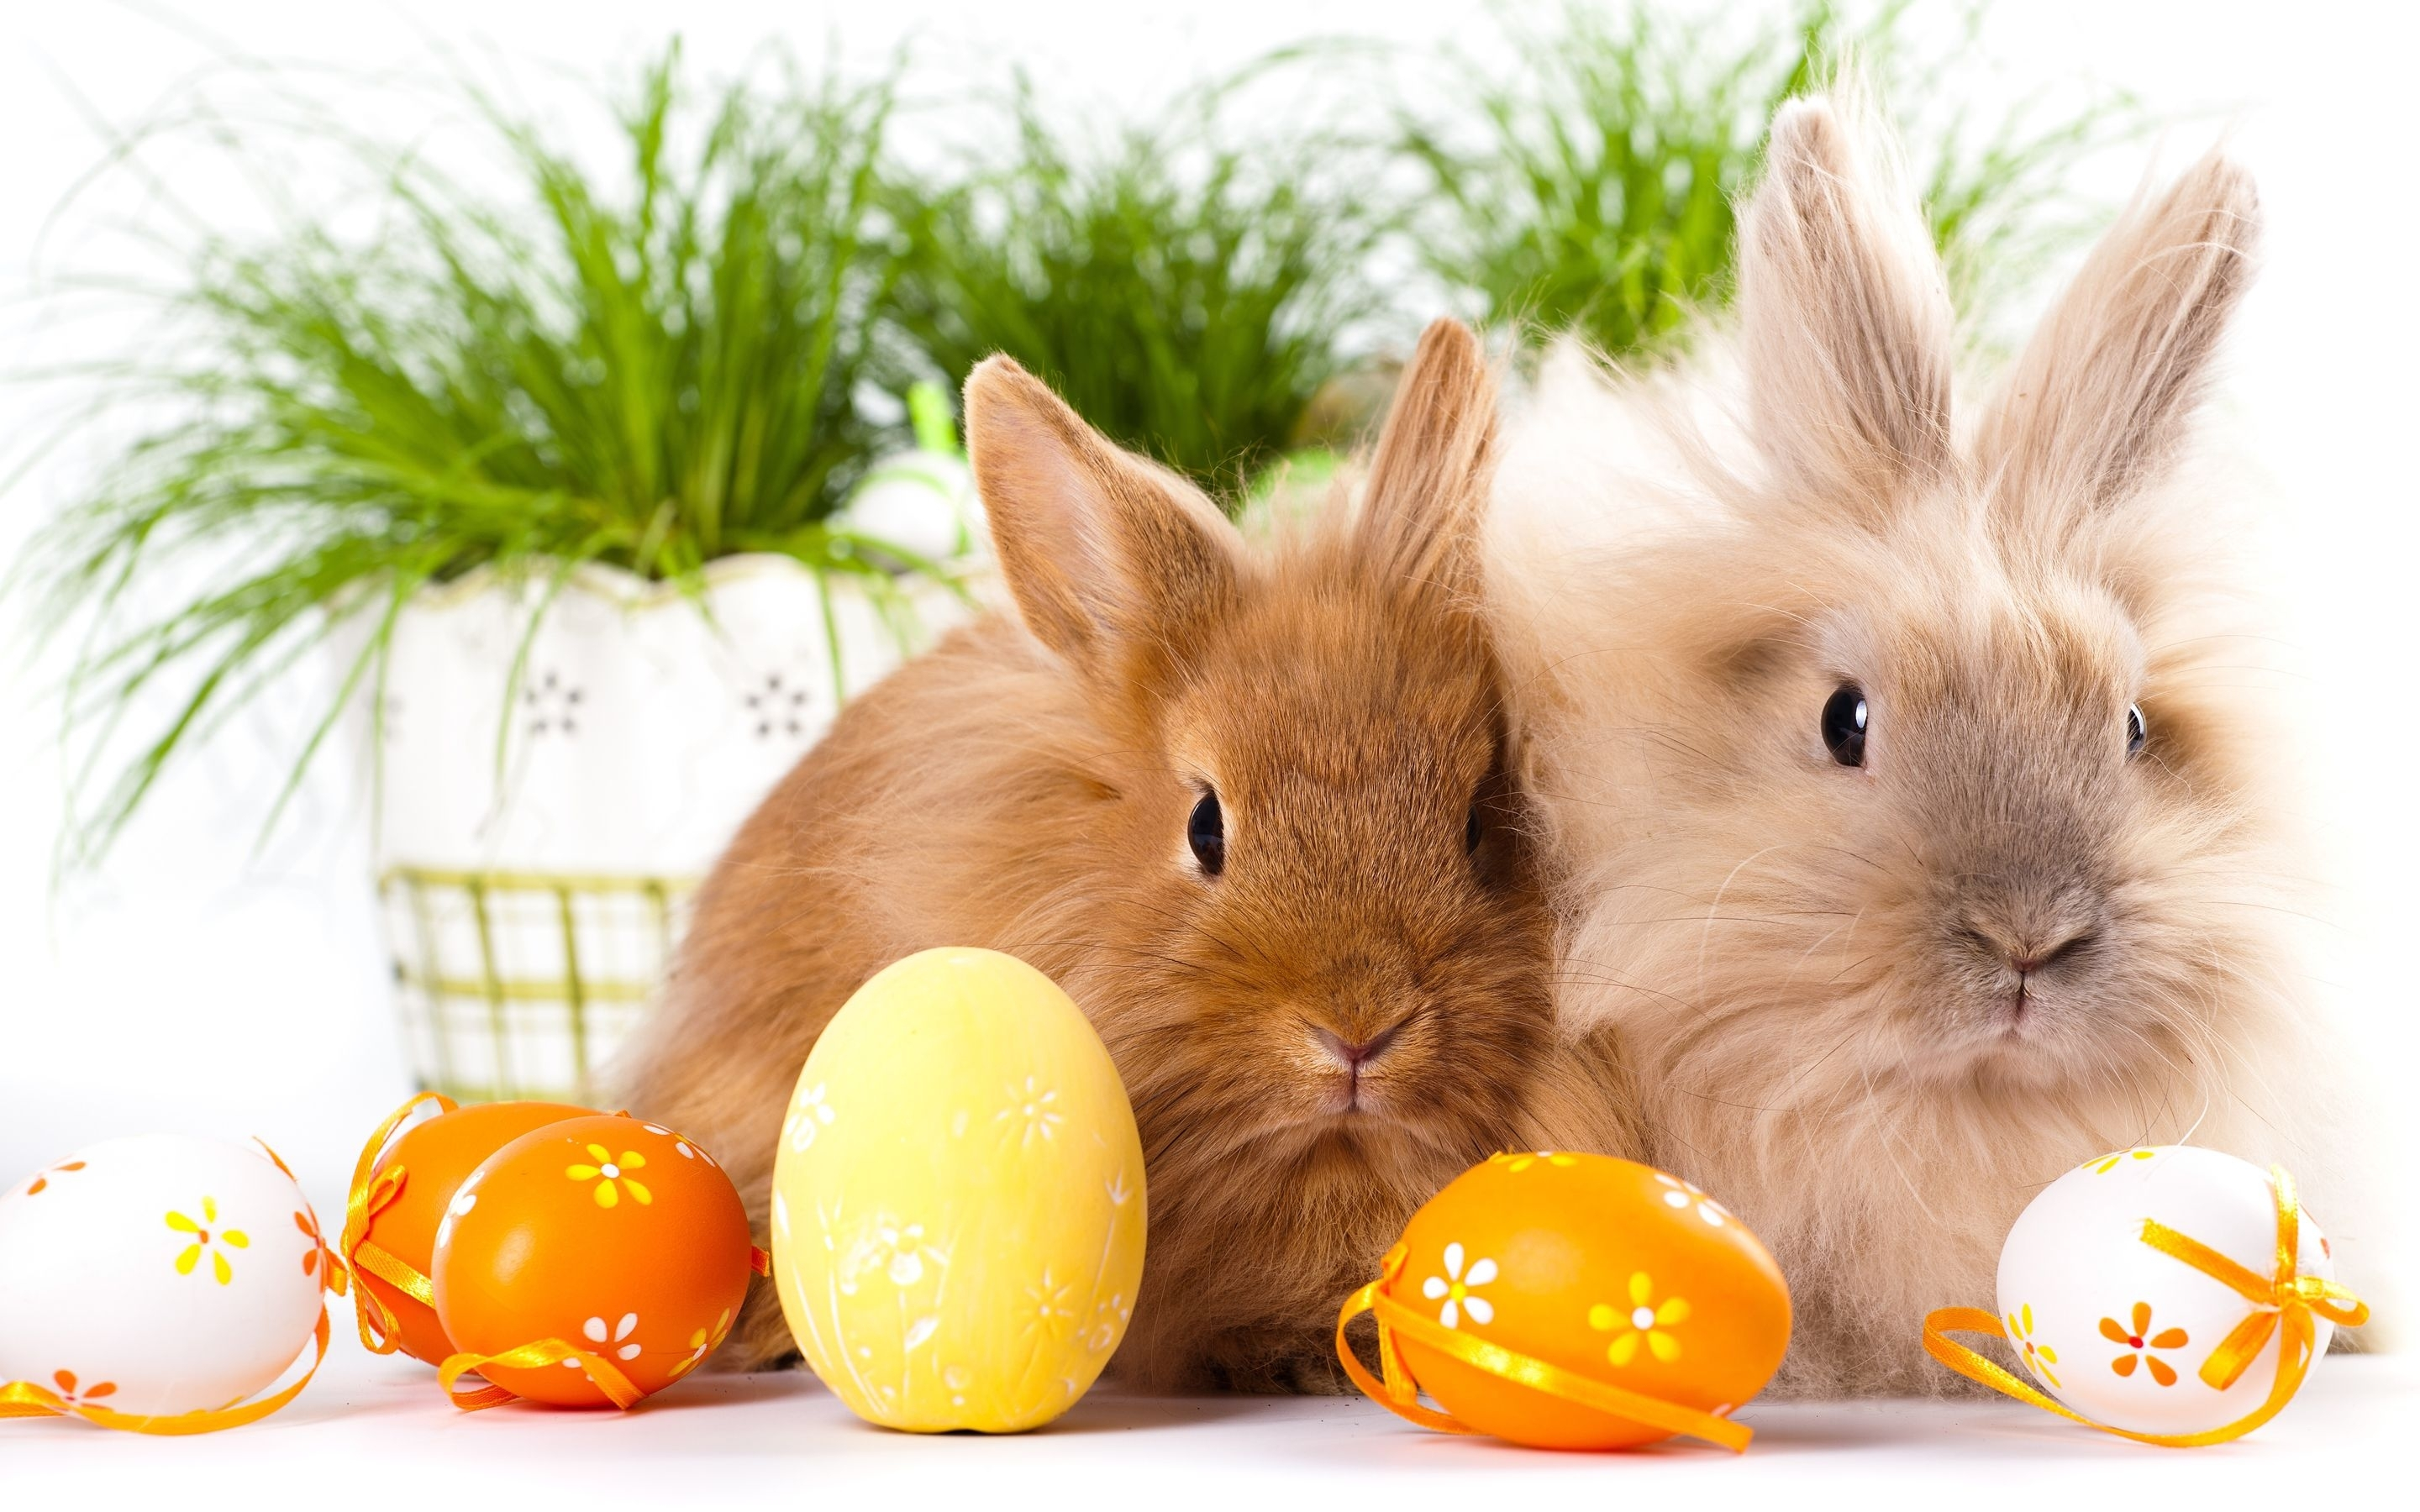 easter wallpapers free download | cute wallpapers for, elecrtonics